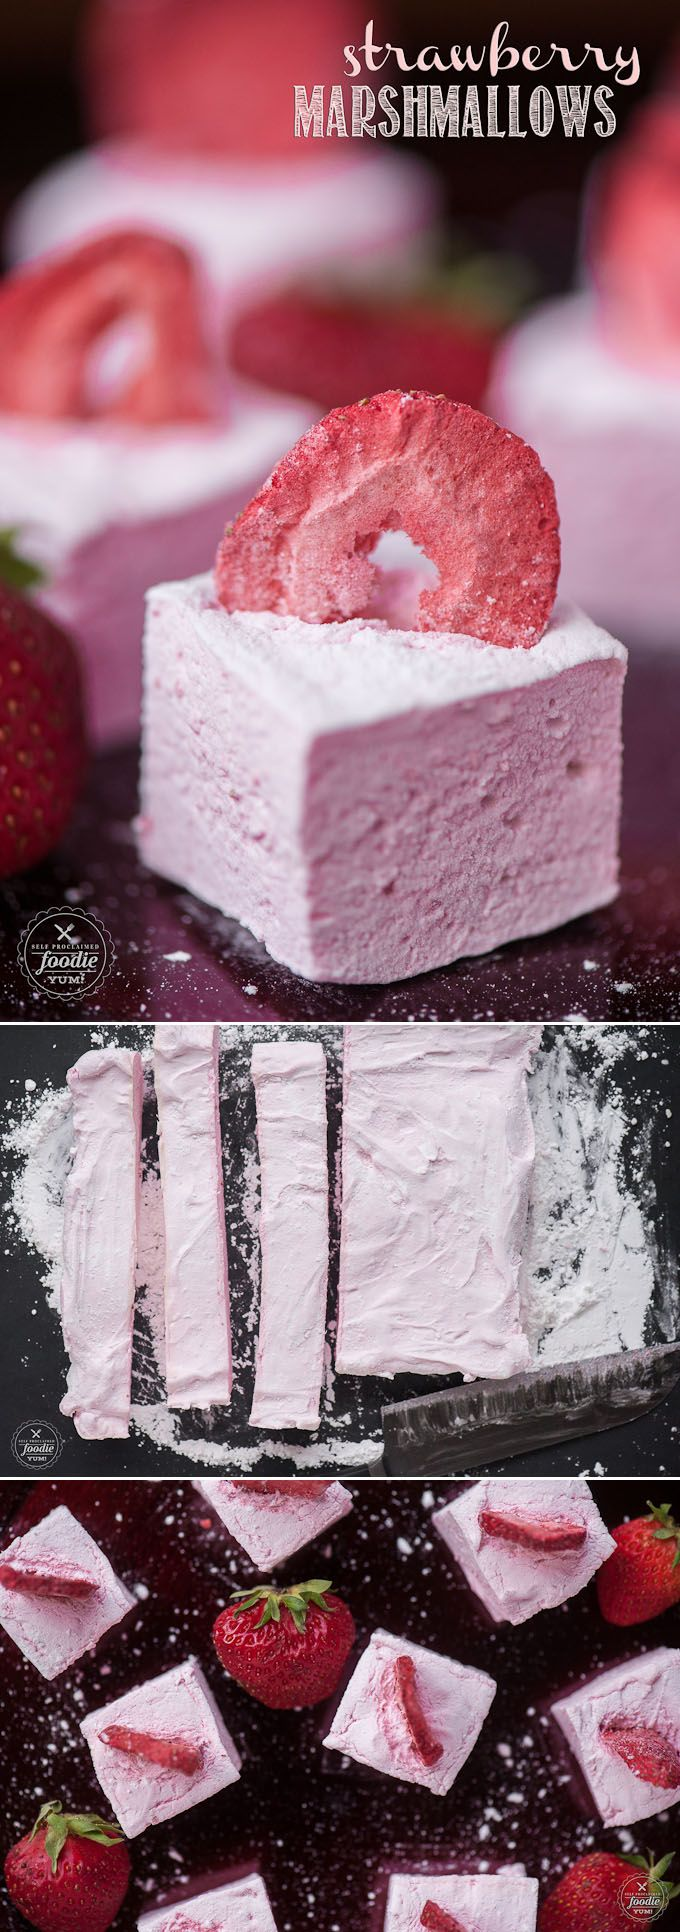 about Strawberries for Kids on Pinterest | Strawberries, Strawberry ...